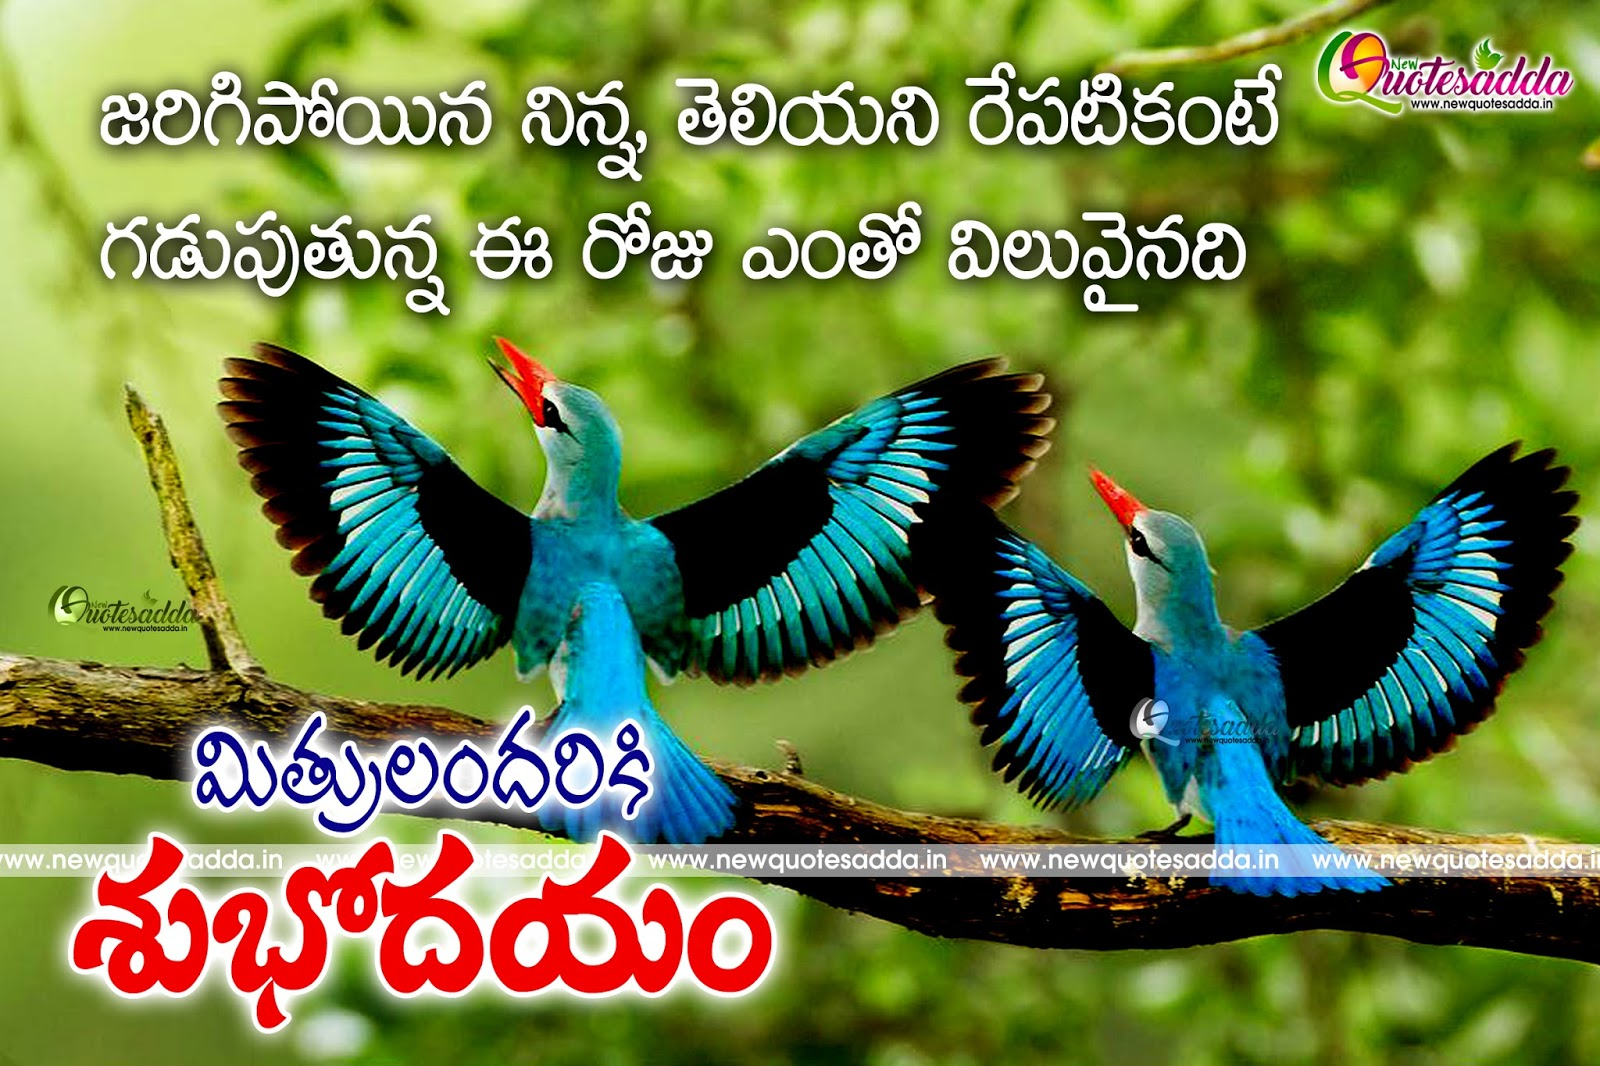 Good Morning Telugu Motivational Life Quotes Newquotesadda